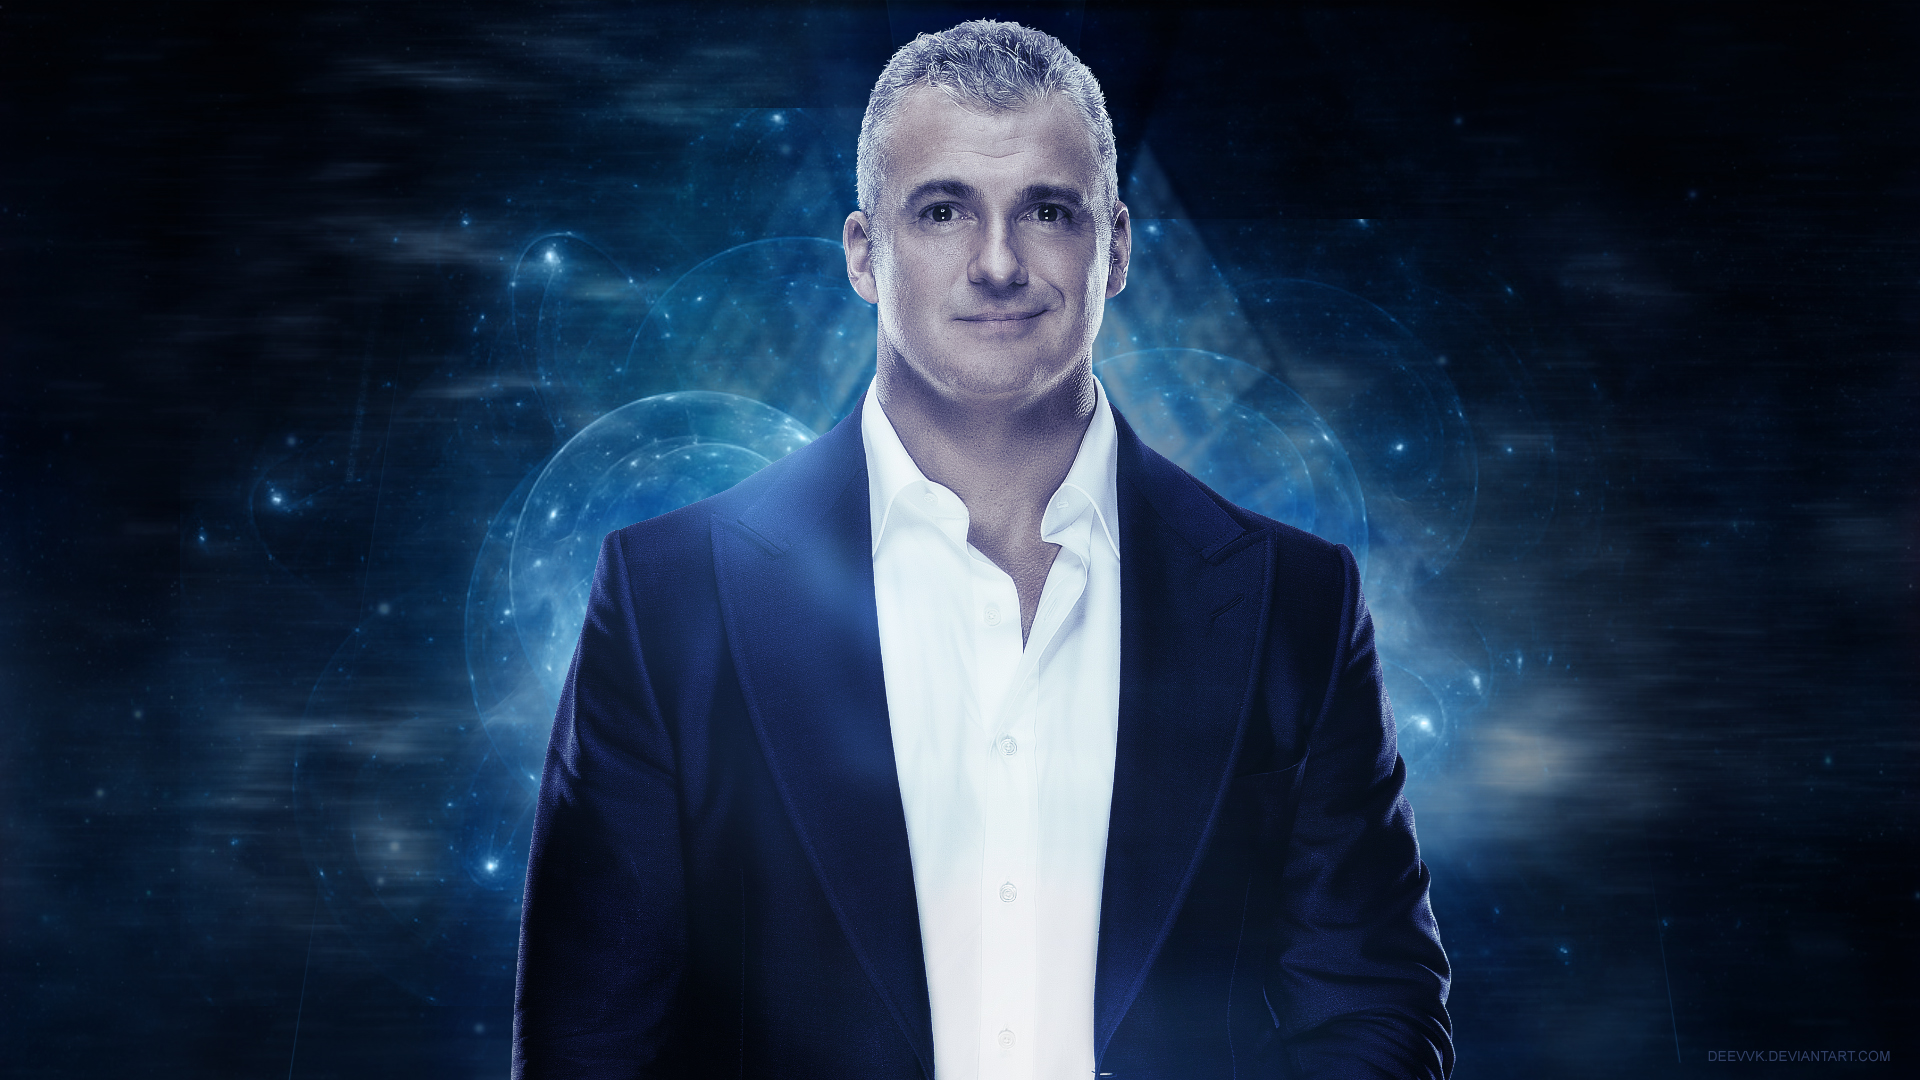 Shane McMahon Wallpaper WWE 2016 by DEEVVK on DeviantArt